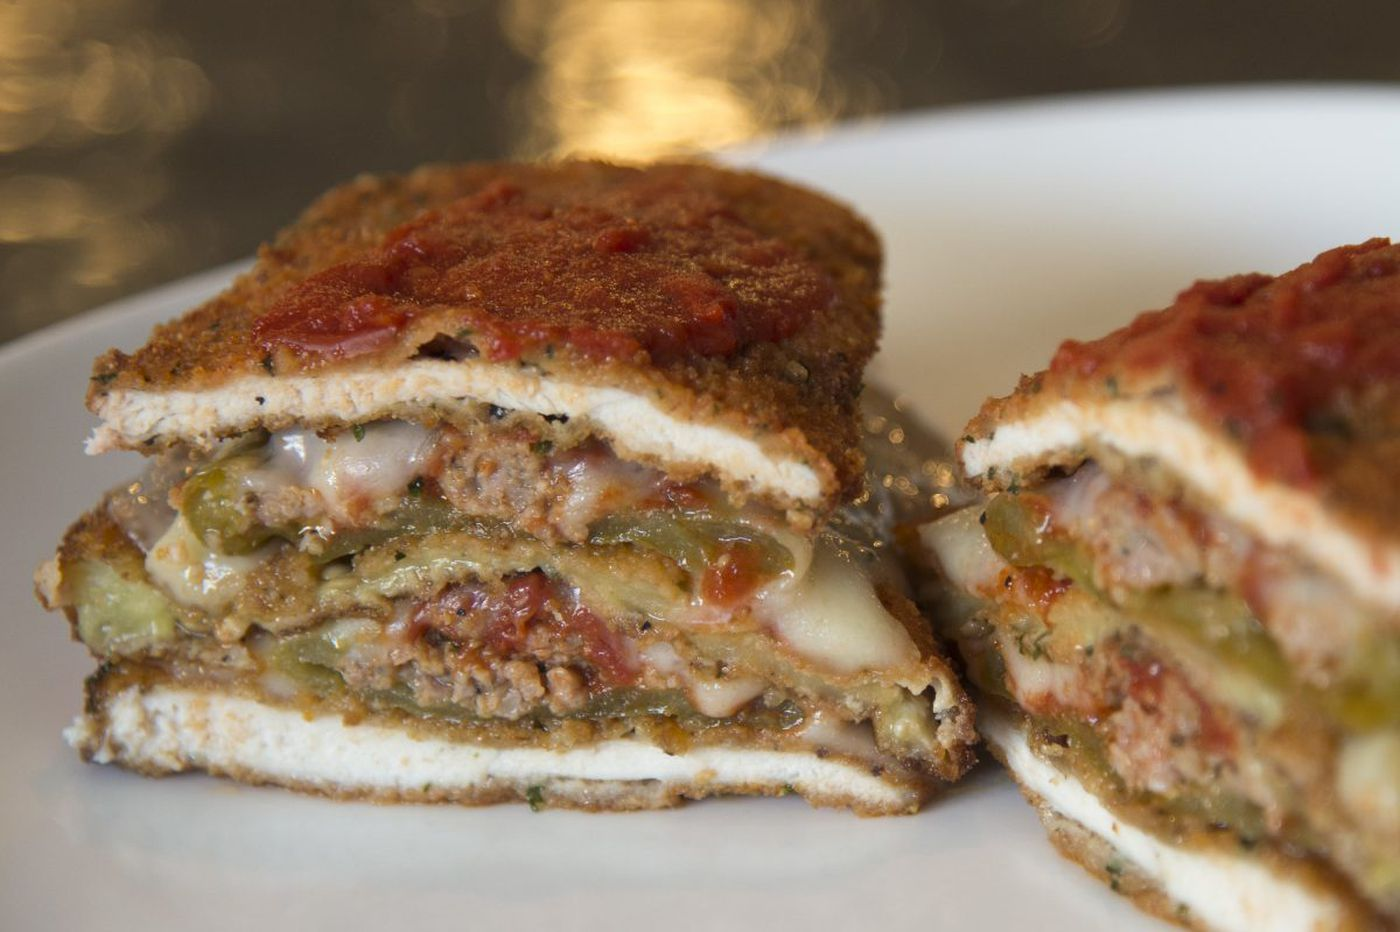 Cutlet lovers rejoice: this stack at Cotoletta is for you